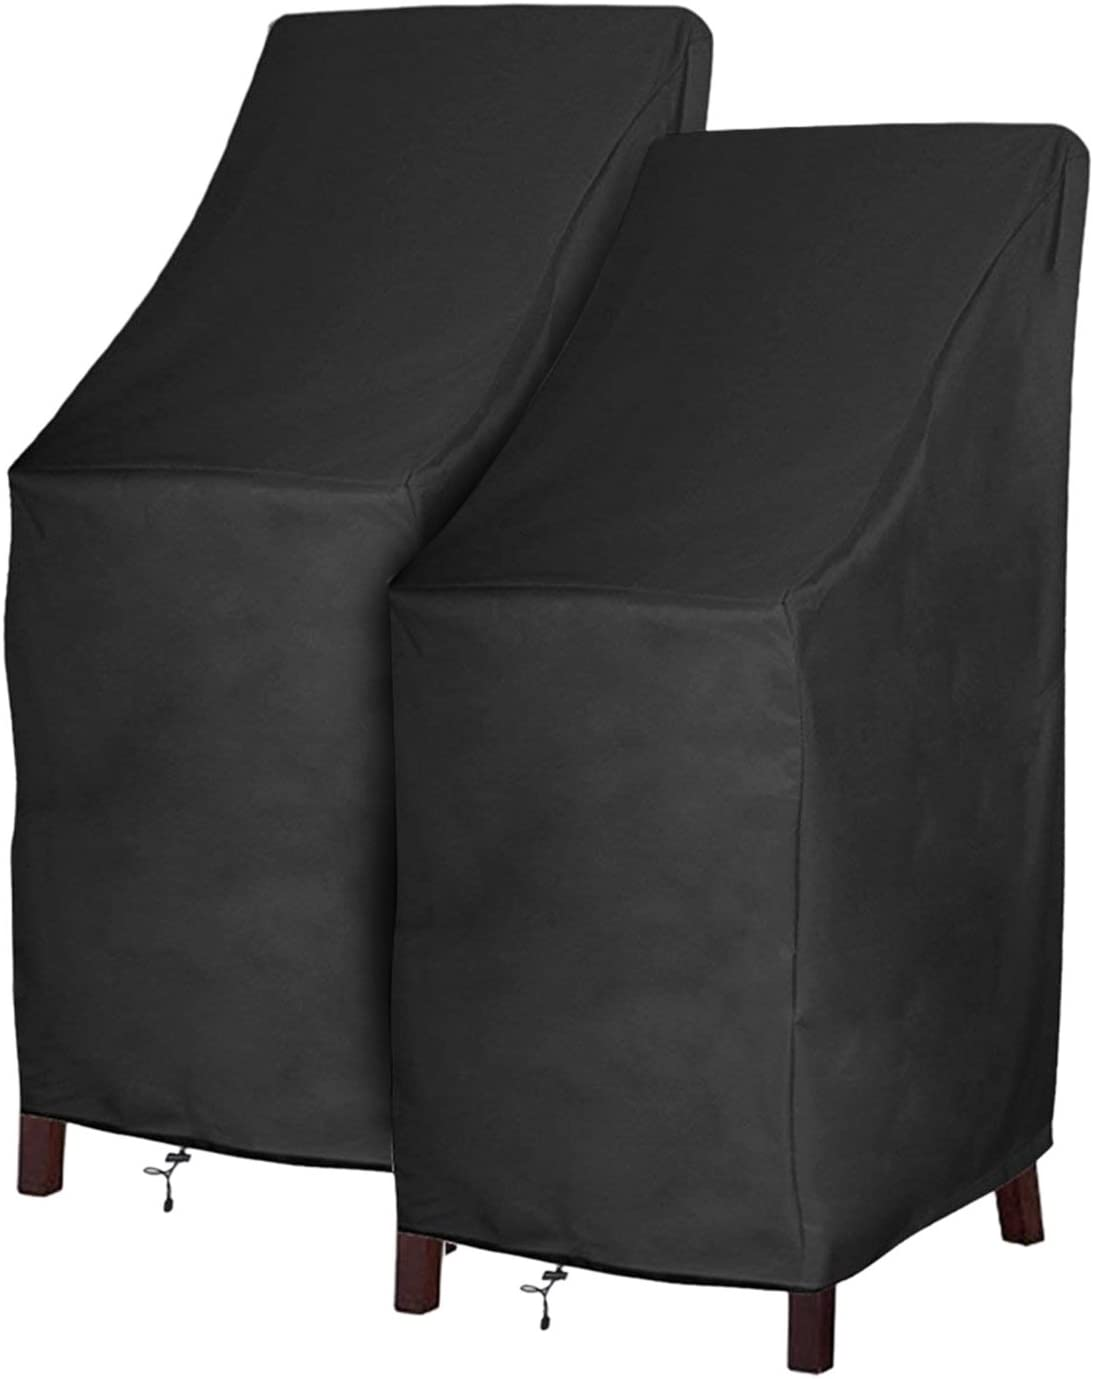 Patio Chair Covers Waterproof Durable Outdoor Bar Stool Cover Premium  Stairs Cover Stackable Chairs Cover Black Thick Oxford Cloth (L10.10 x D10.10  x